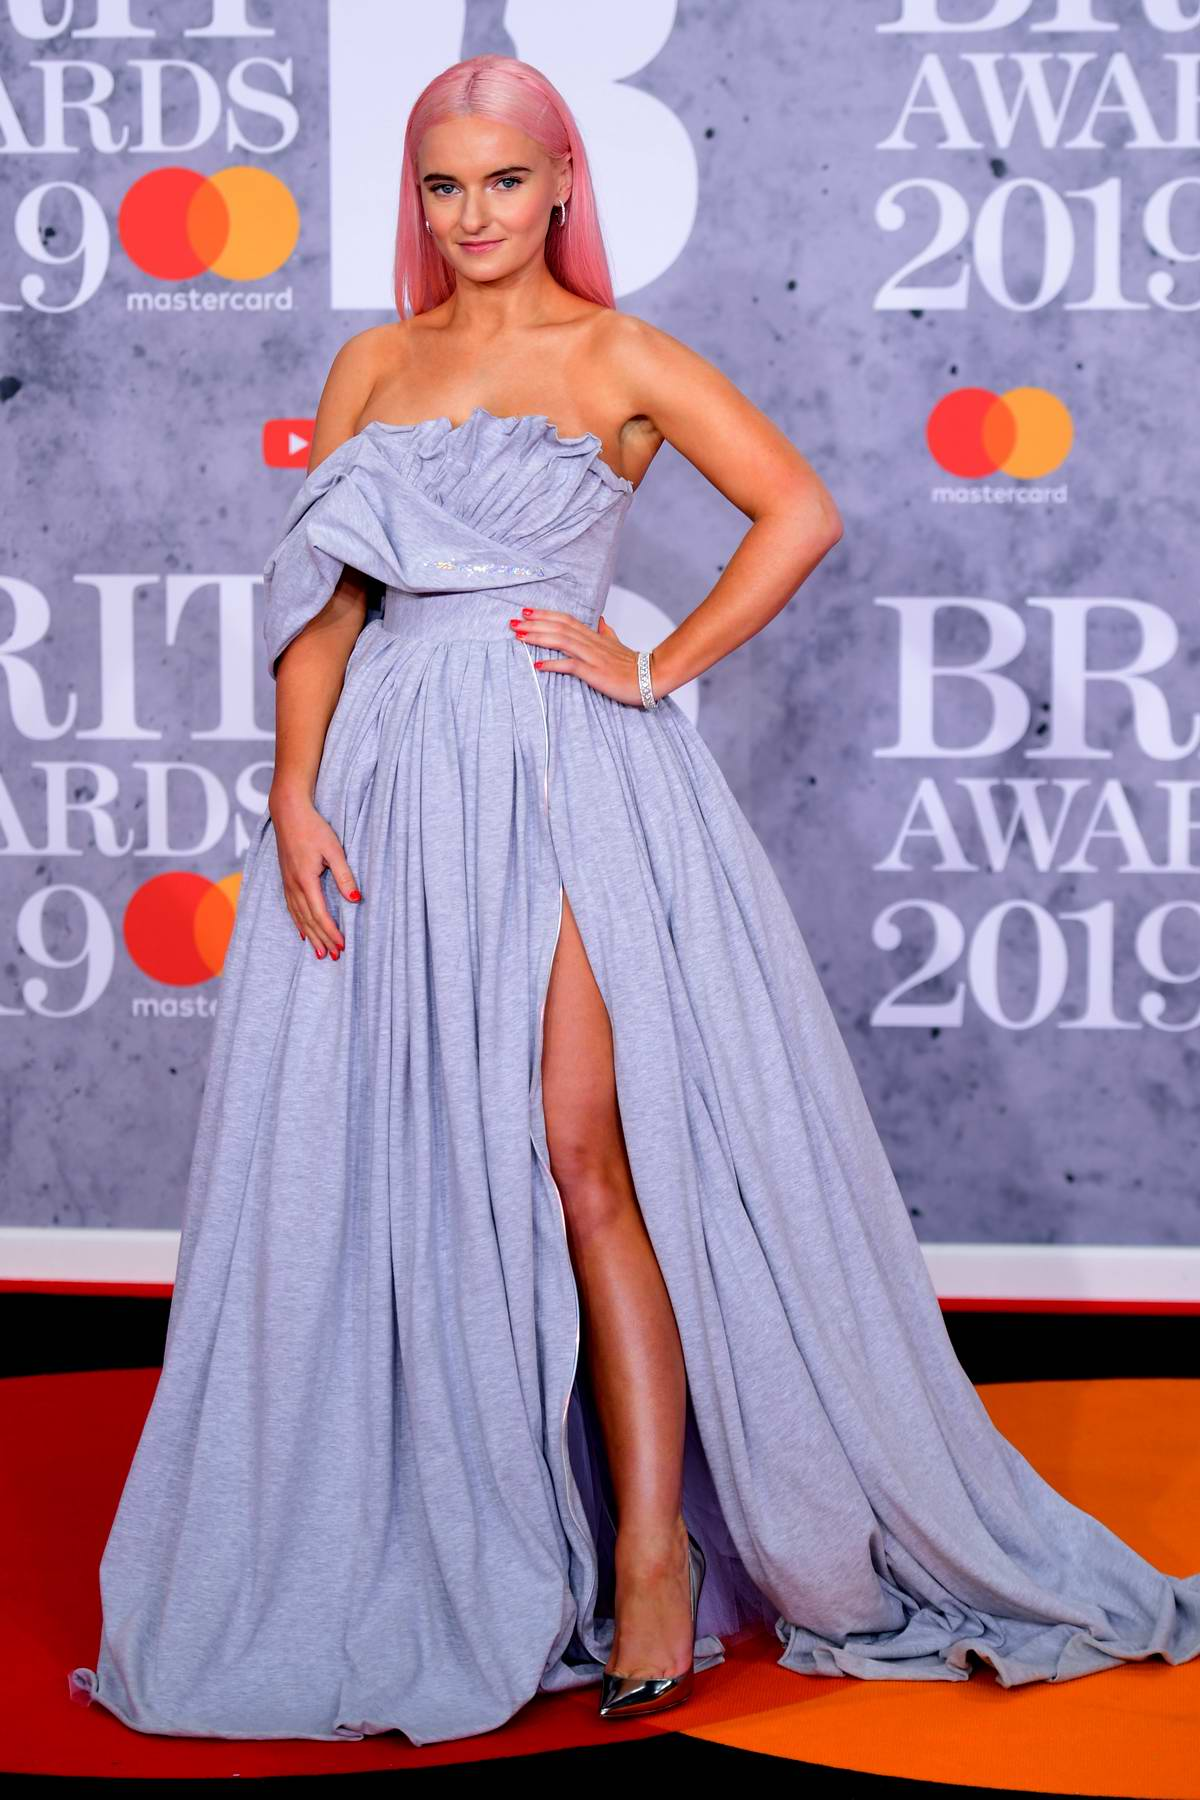 Grace Chatto attends The BRIT Awards 2019 held at The O2 Arena in London, UK